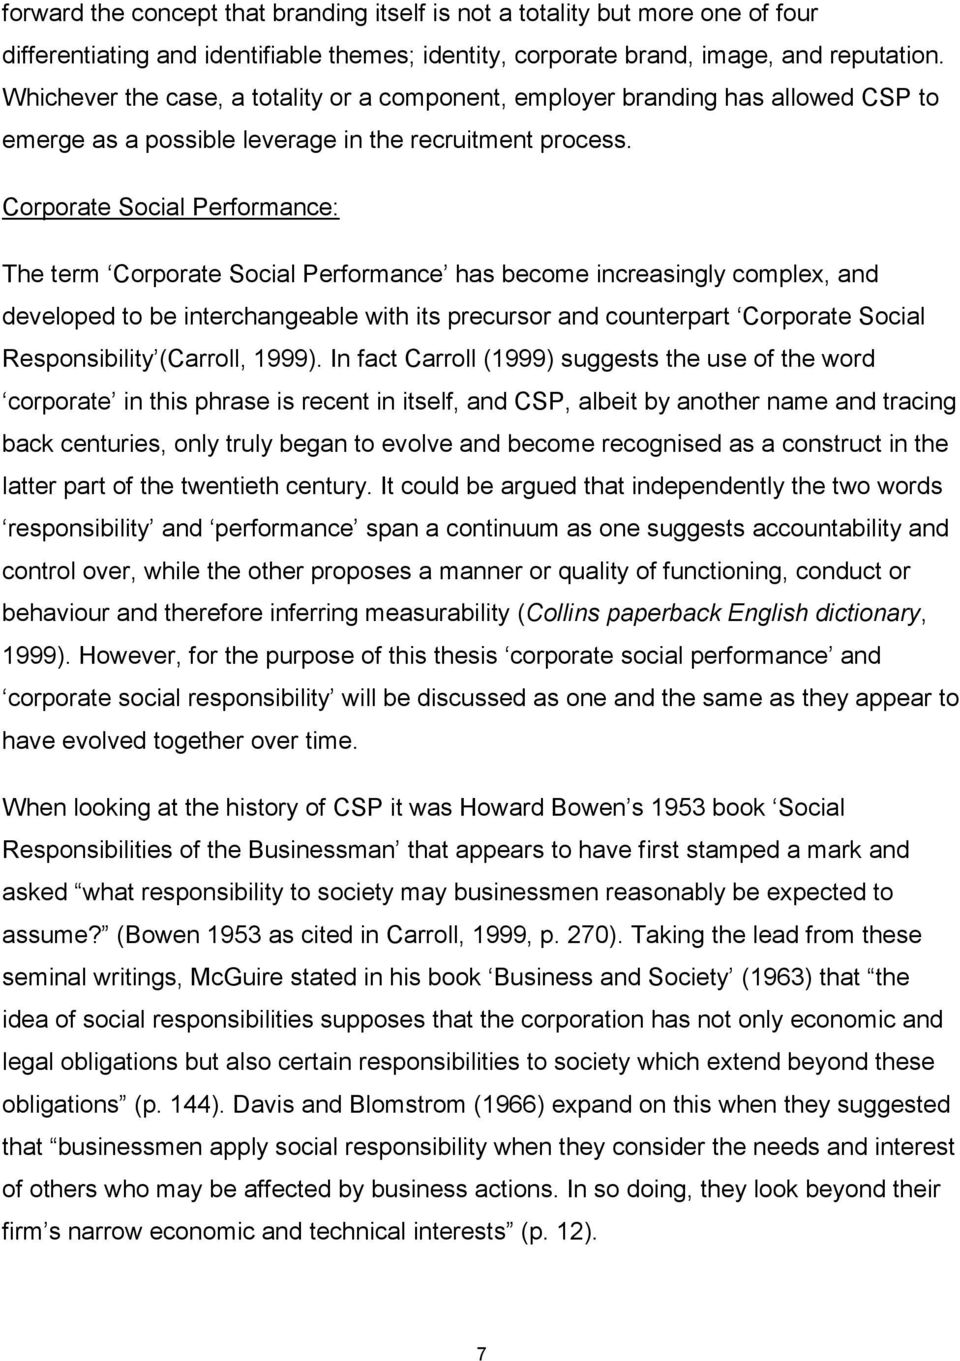 Corporate Social Performance: The term Corporate Social Performance has become increasingly complex, and developed to be interchangeable with its precursor and counterpart Corporate Social